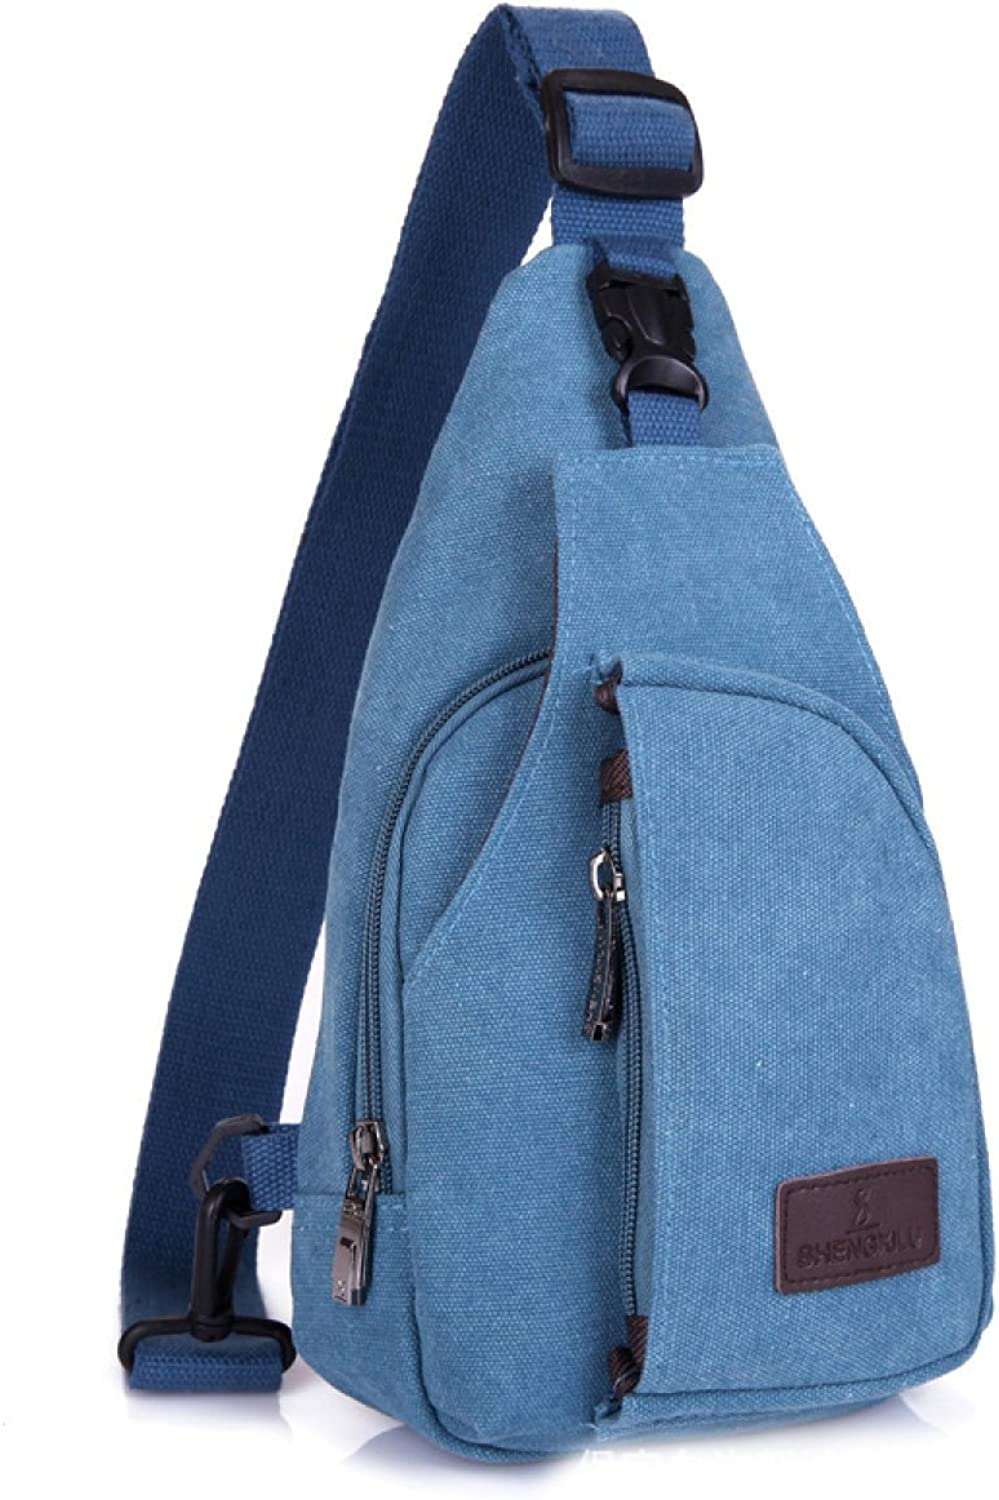 BULAGE Bag Leisure Men Chest Canvas Women Messenger Bag Multifunction Outdoor Sports Fashion Riding Shopping Going Out